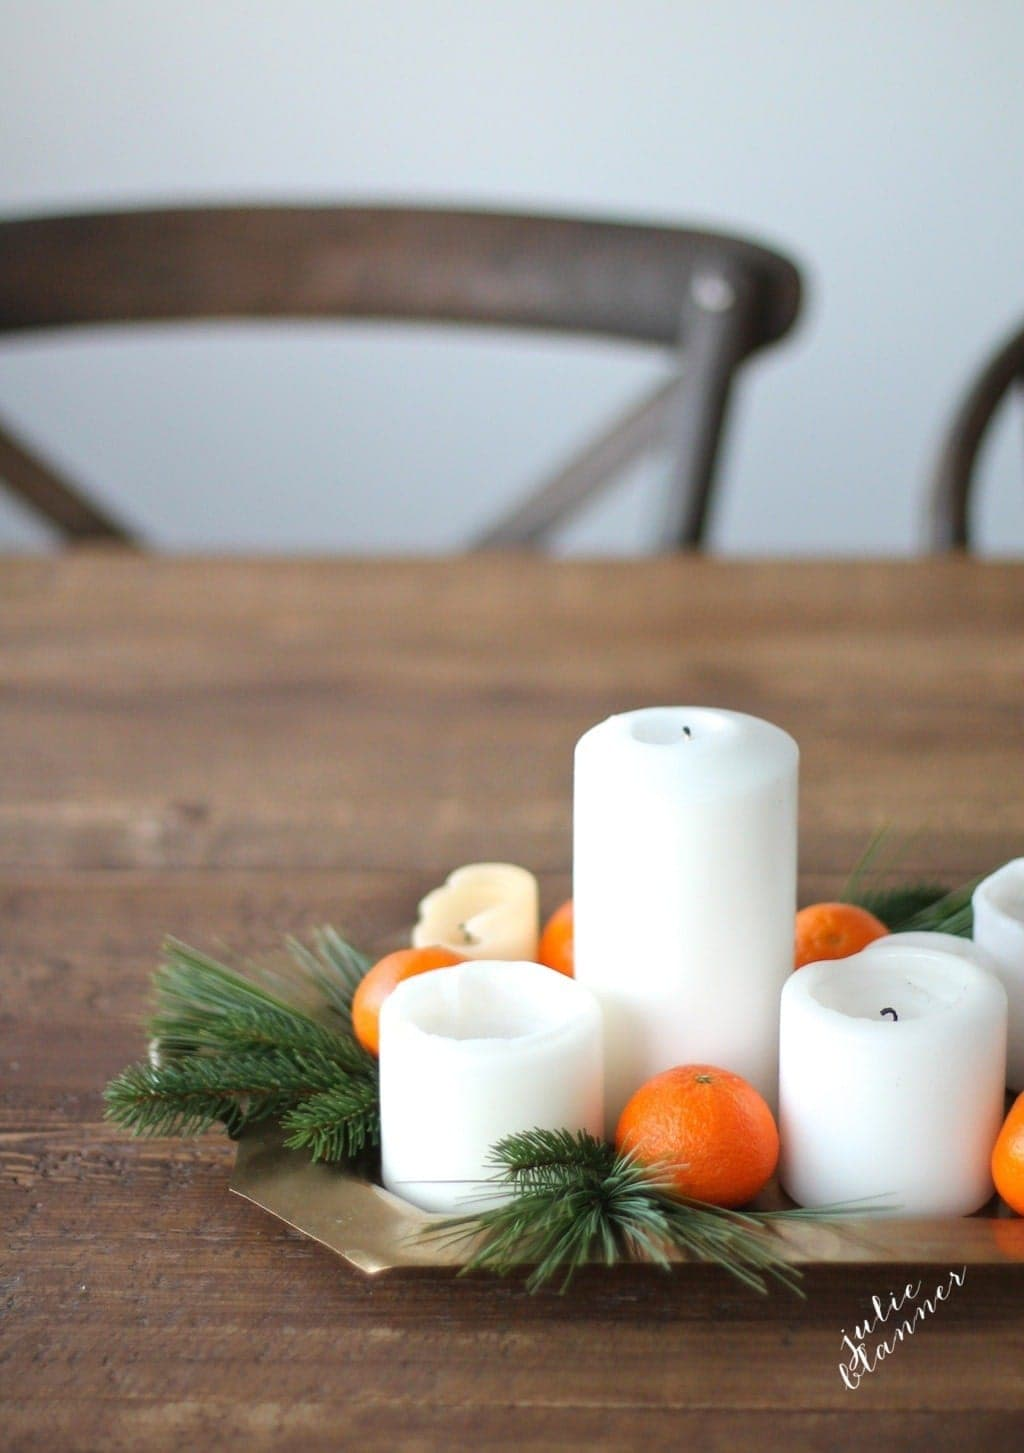 DIY Christmas table setting - get the recipe for this simple centerpiece!